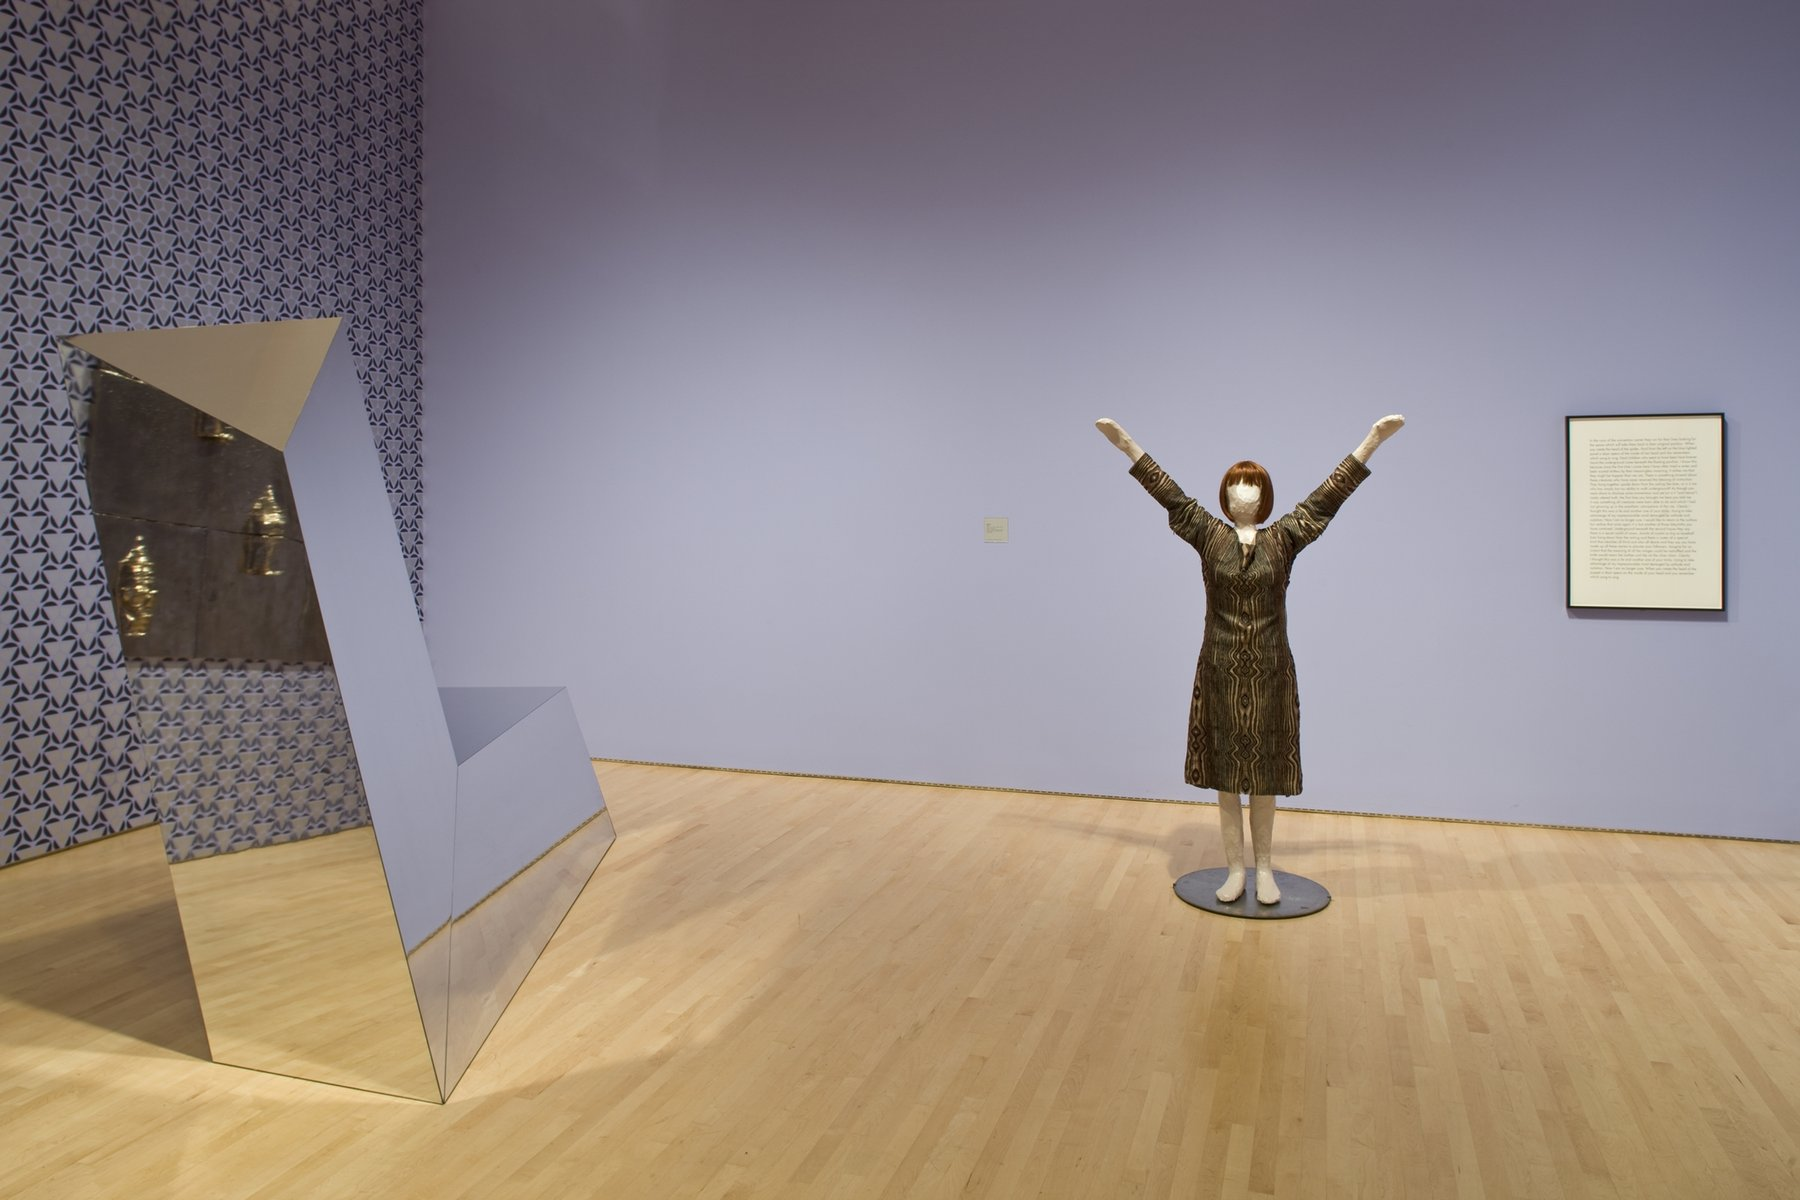 A sculpture of a woman with her hands raise din the air next to a reflective geometric sculpture and a framed block of text